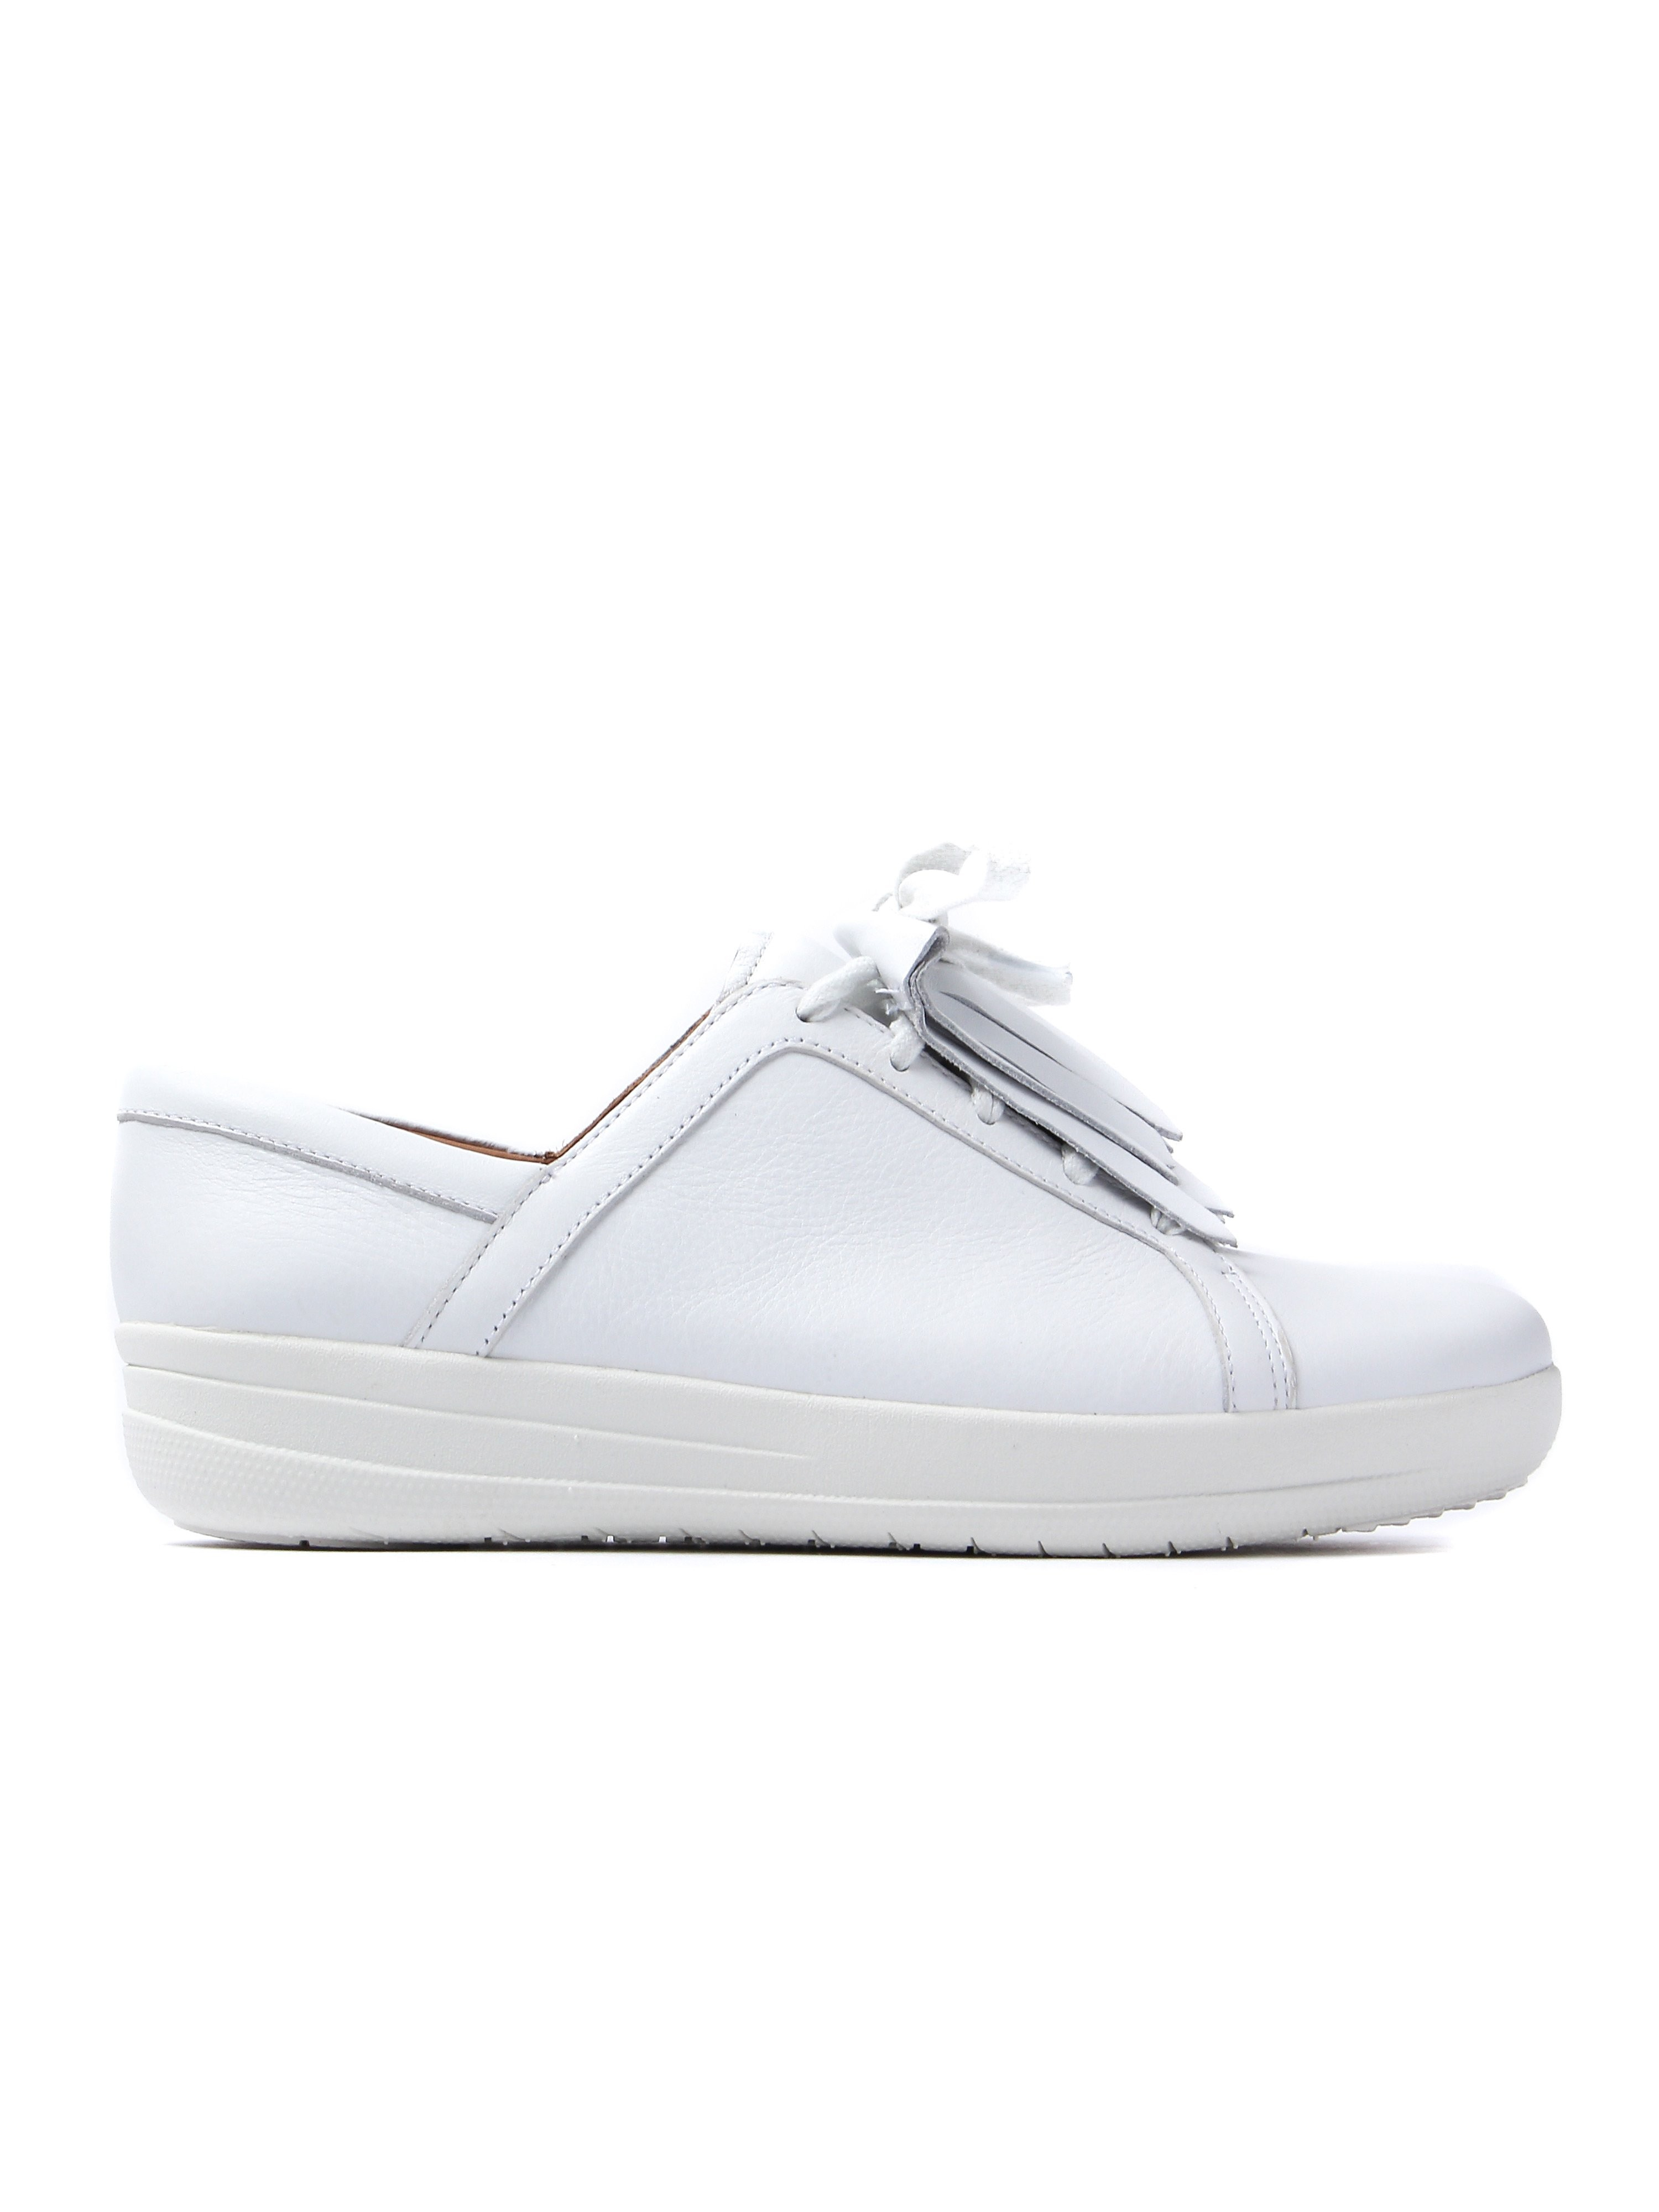 FitFlop Women's F-Sporty II Lace Up Fringe Sneaker - White Leather